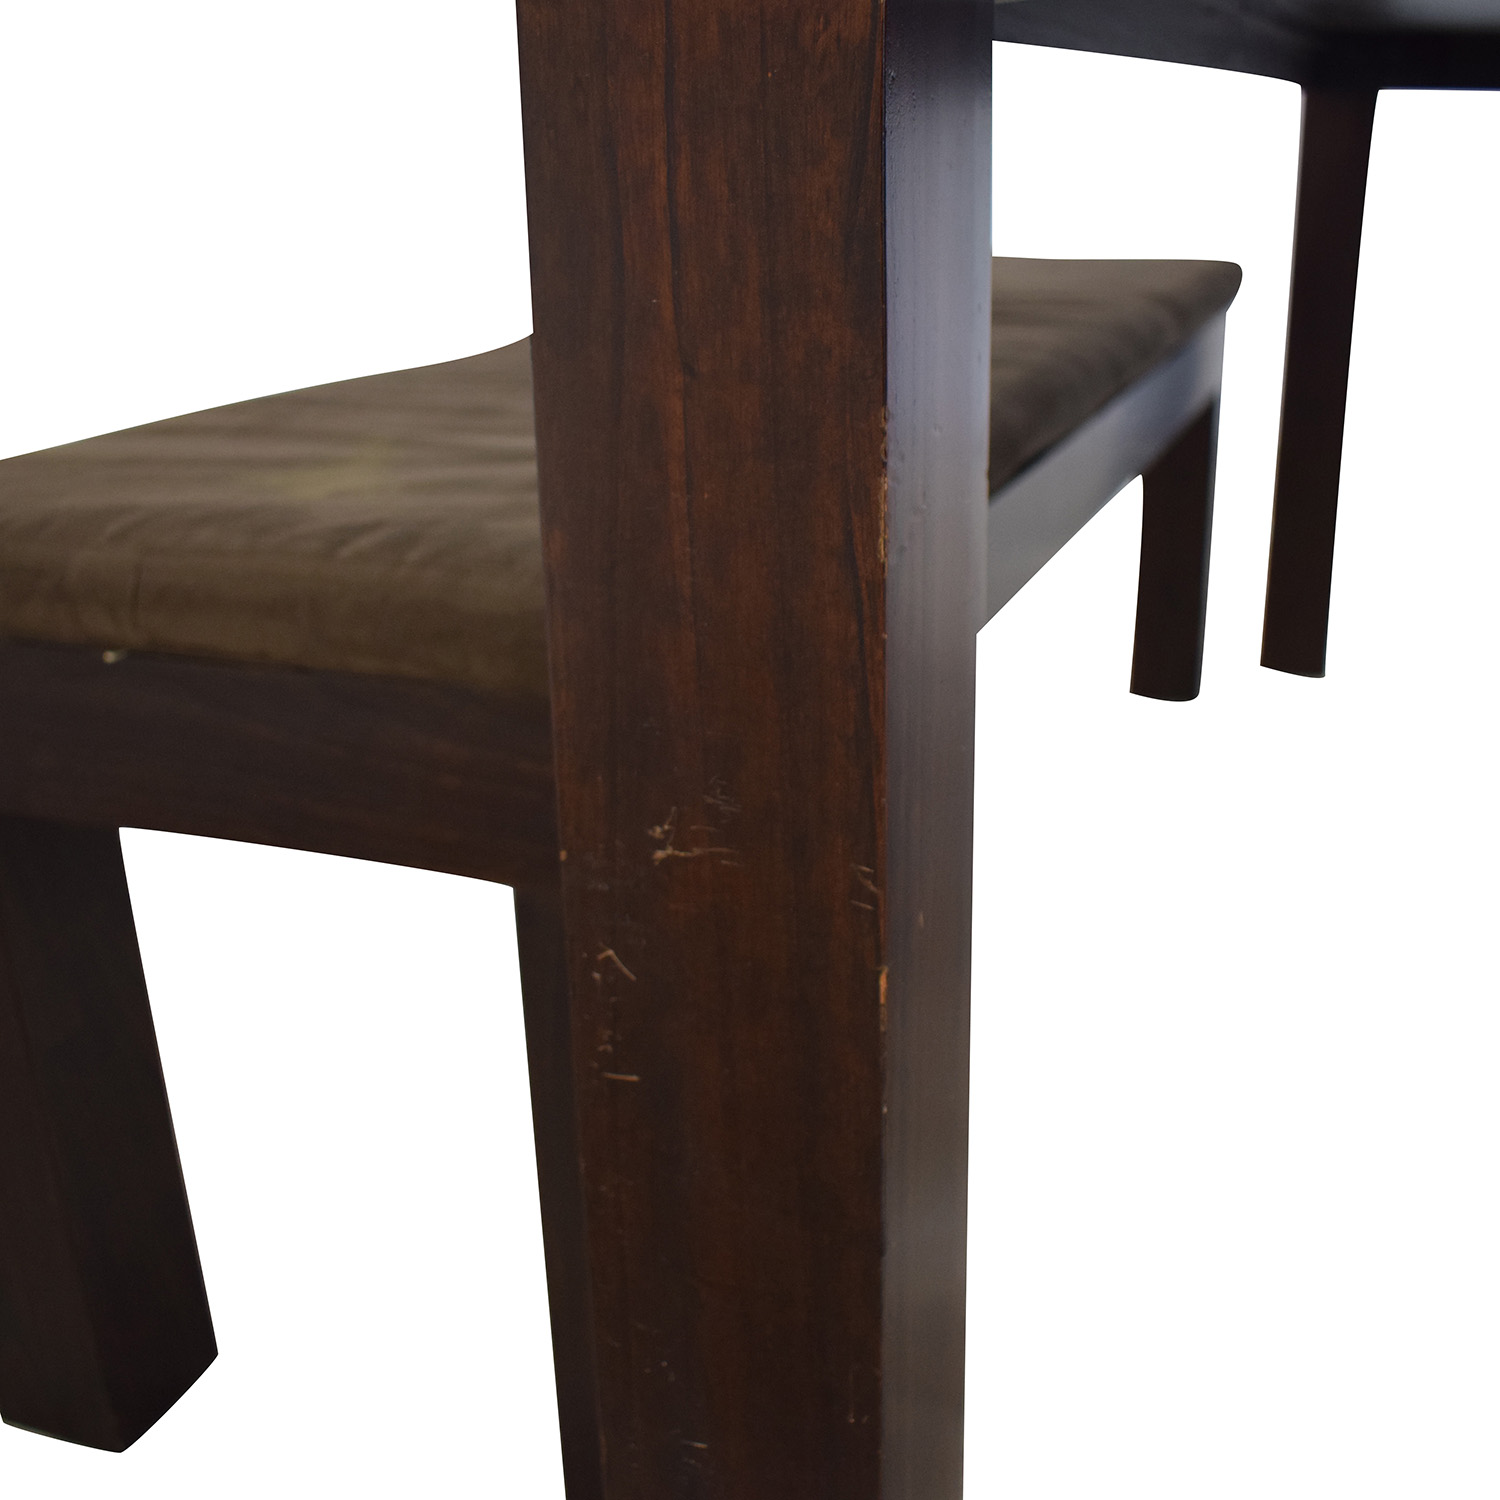 CB2 CB2 Indie Dining Table with Benches